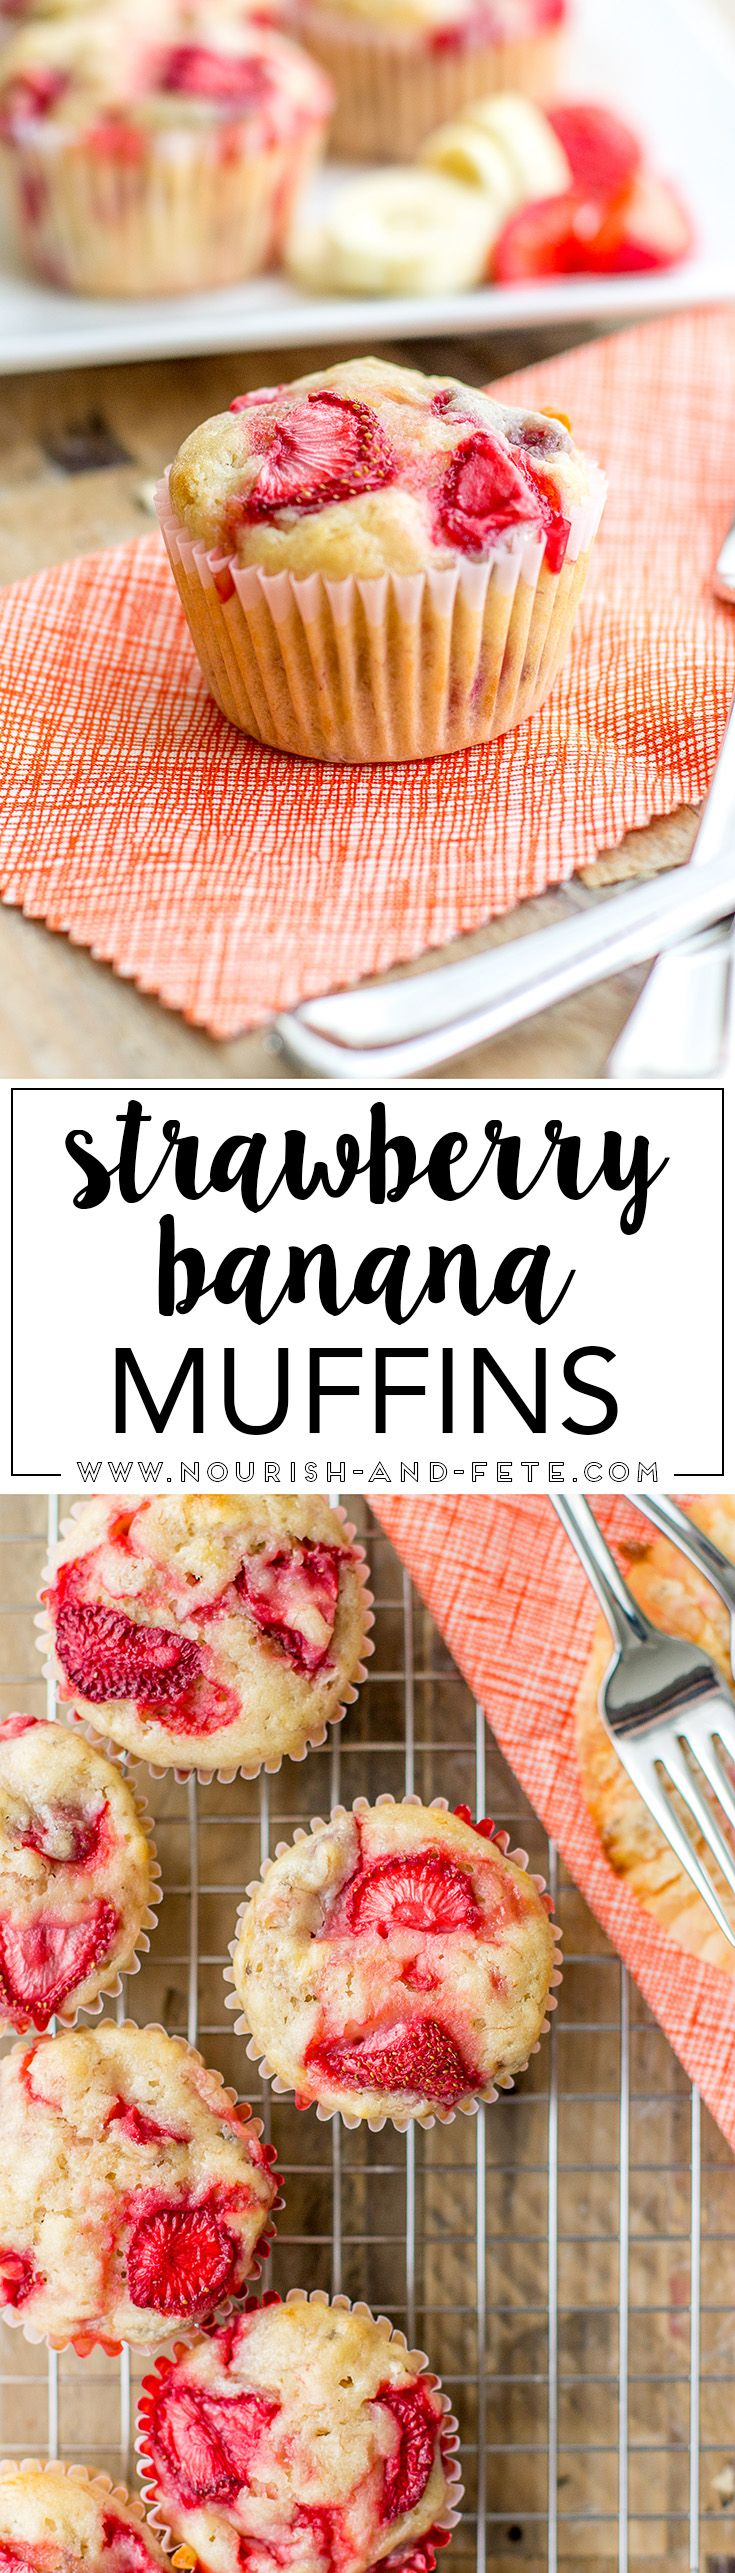 Luscious strawberry banana muffins, mixed quickly by hand in one bowl. http://www.nourish-and-fete.com via @nourishandfete